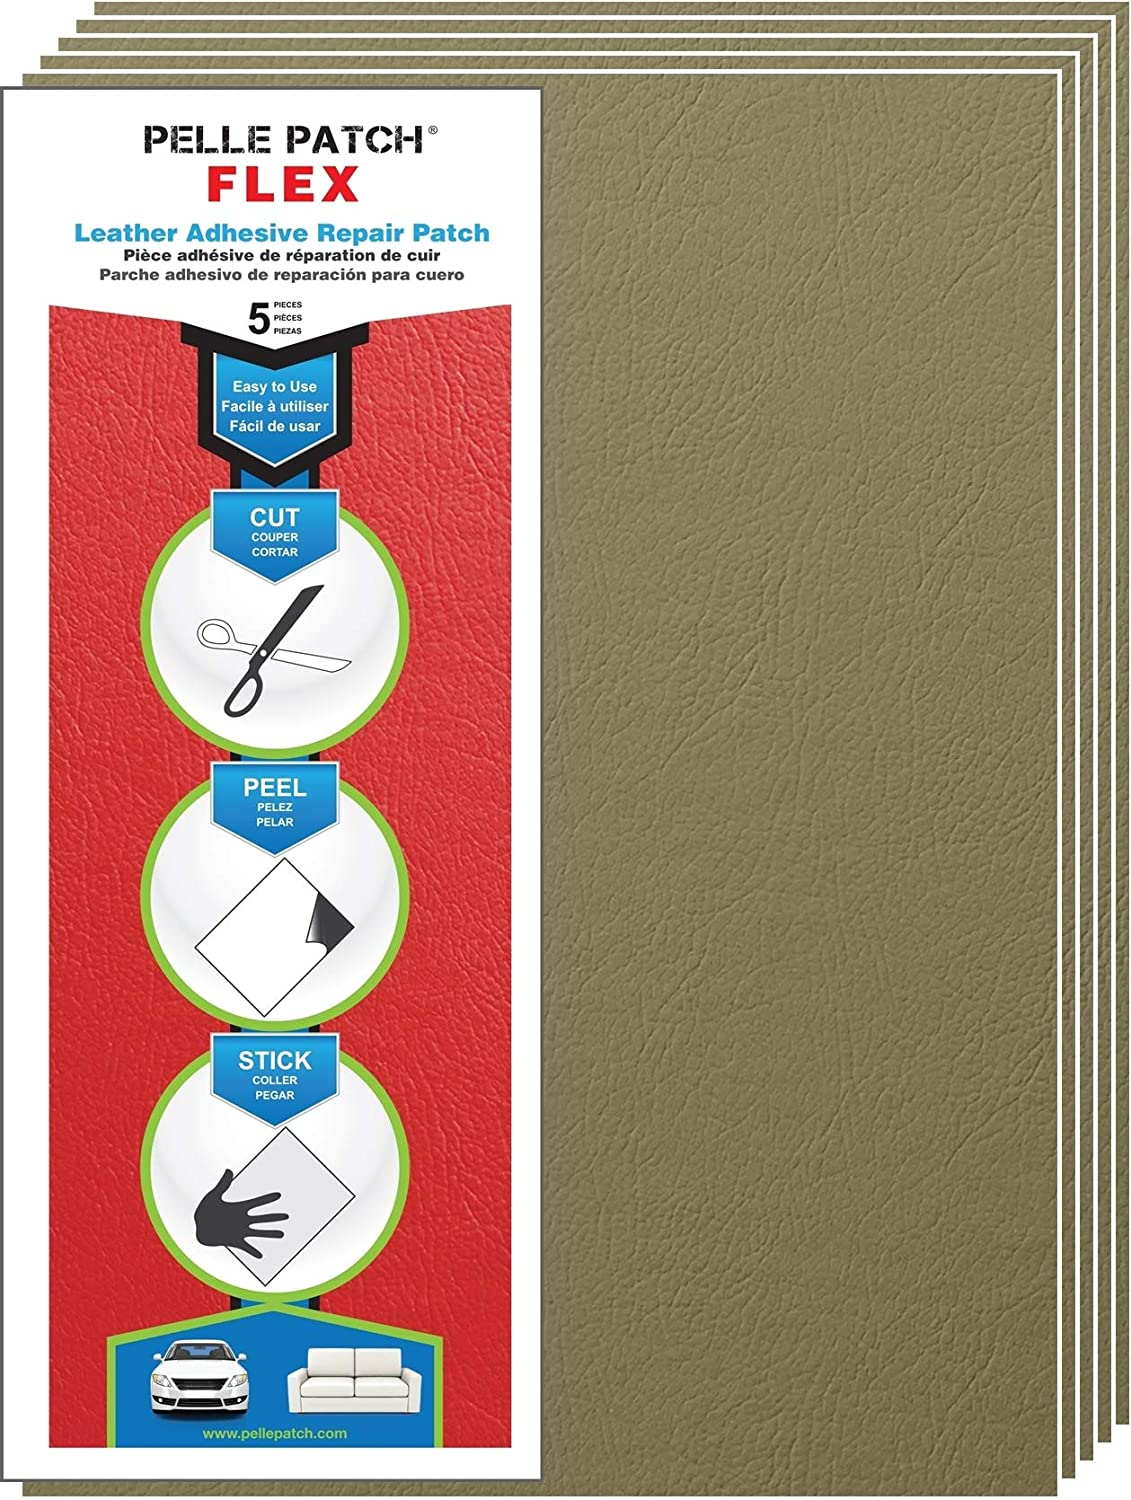 Off-White 5X Leather /& Vinyl Adhesive Repair Patch Pelle Patch 25 Colors Available Flex 8x11